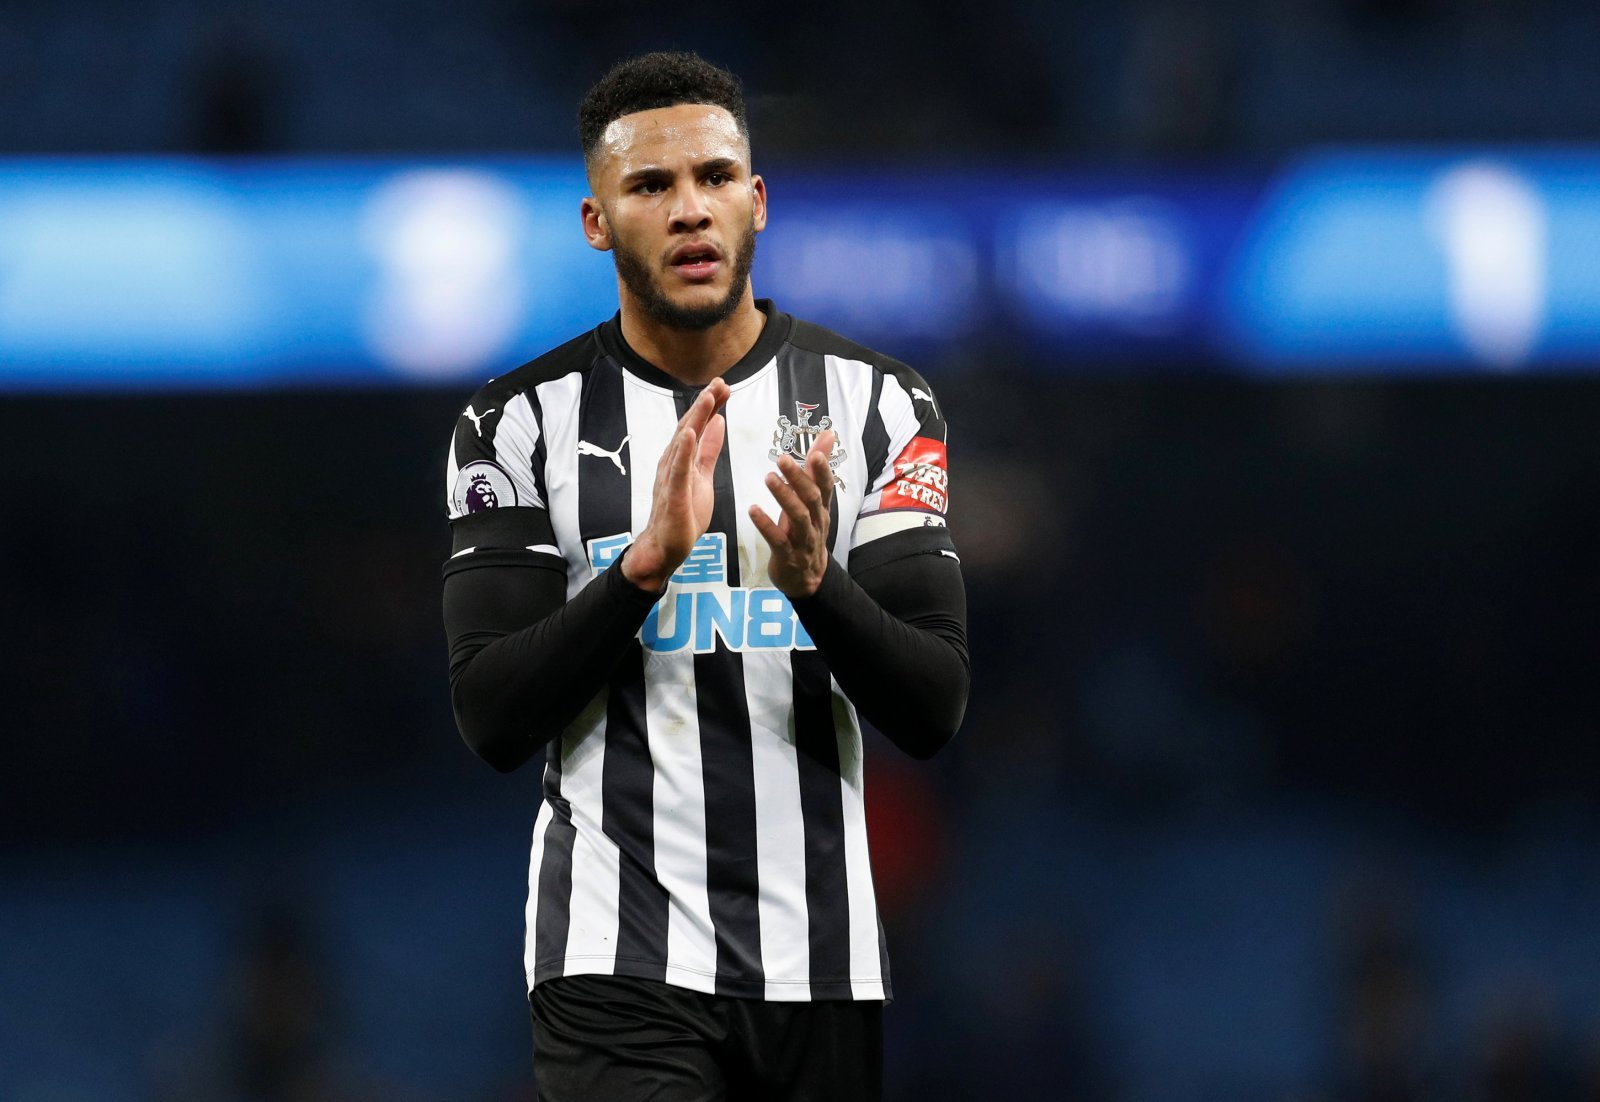 Lascelles' call for unity will only fall on deaf ears in Newcastle's current state